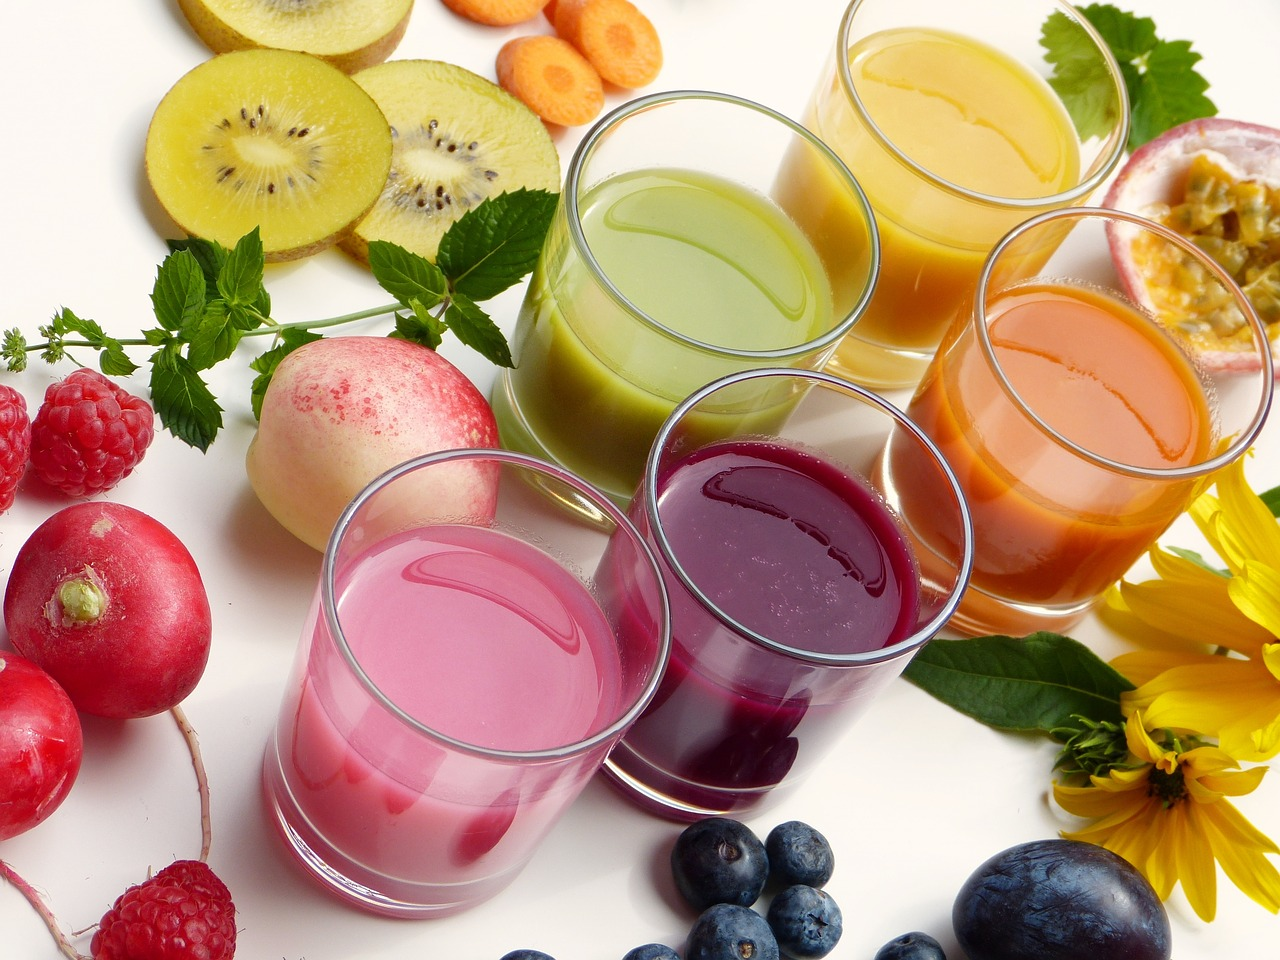 how much weight can you lose on a smoothie diet